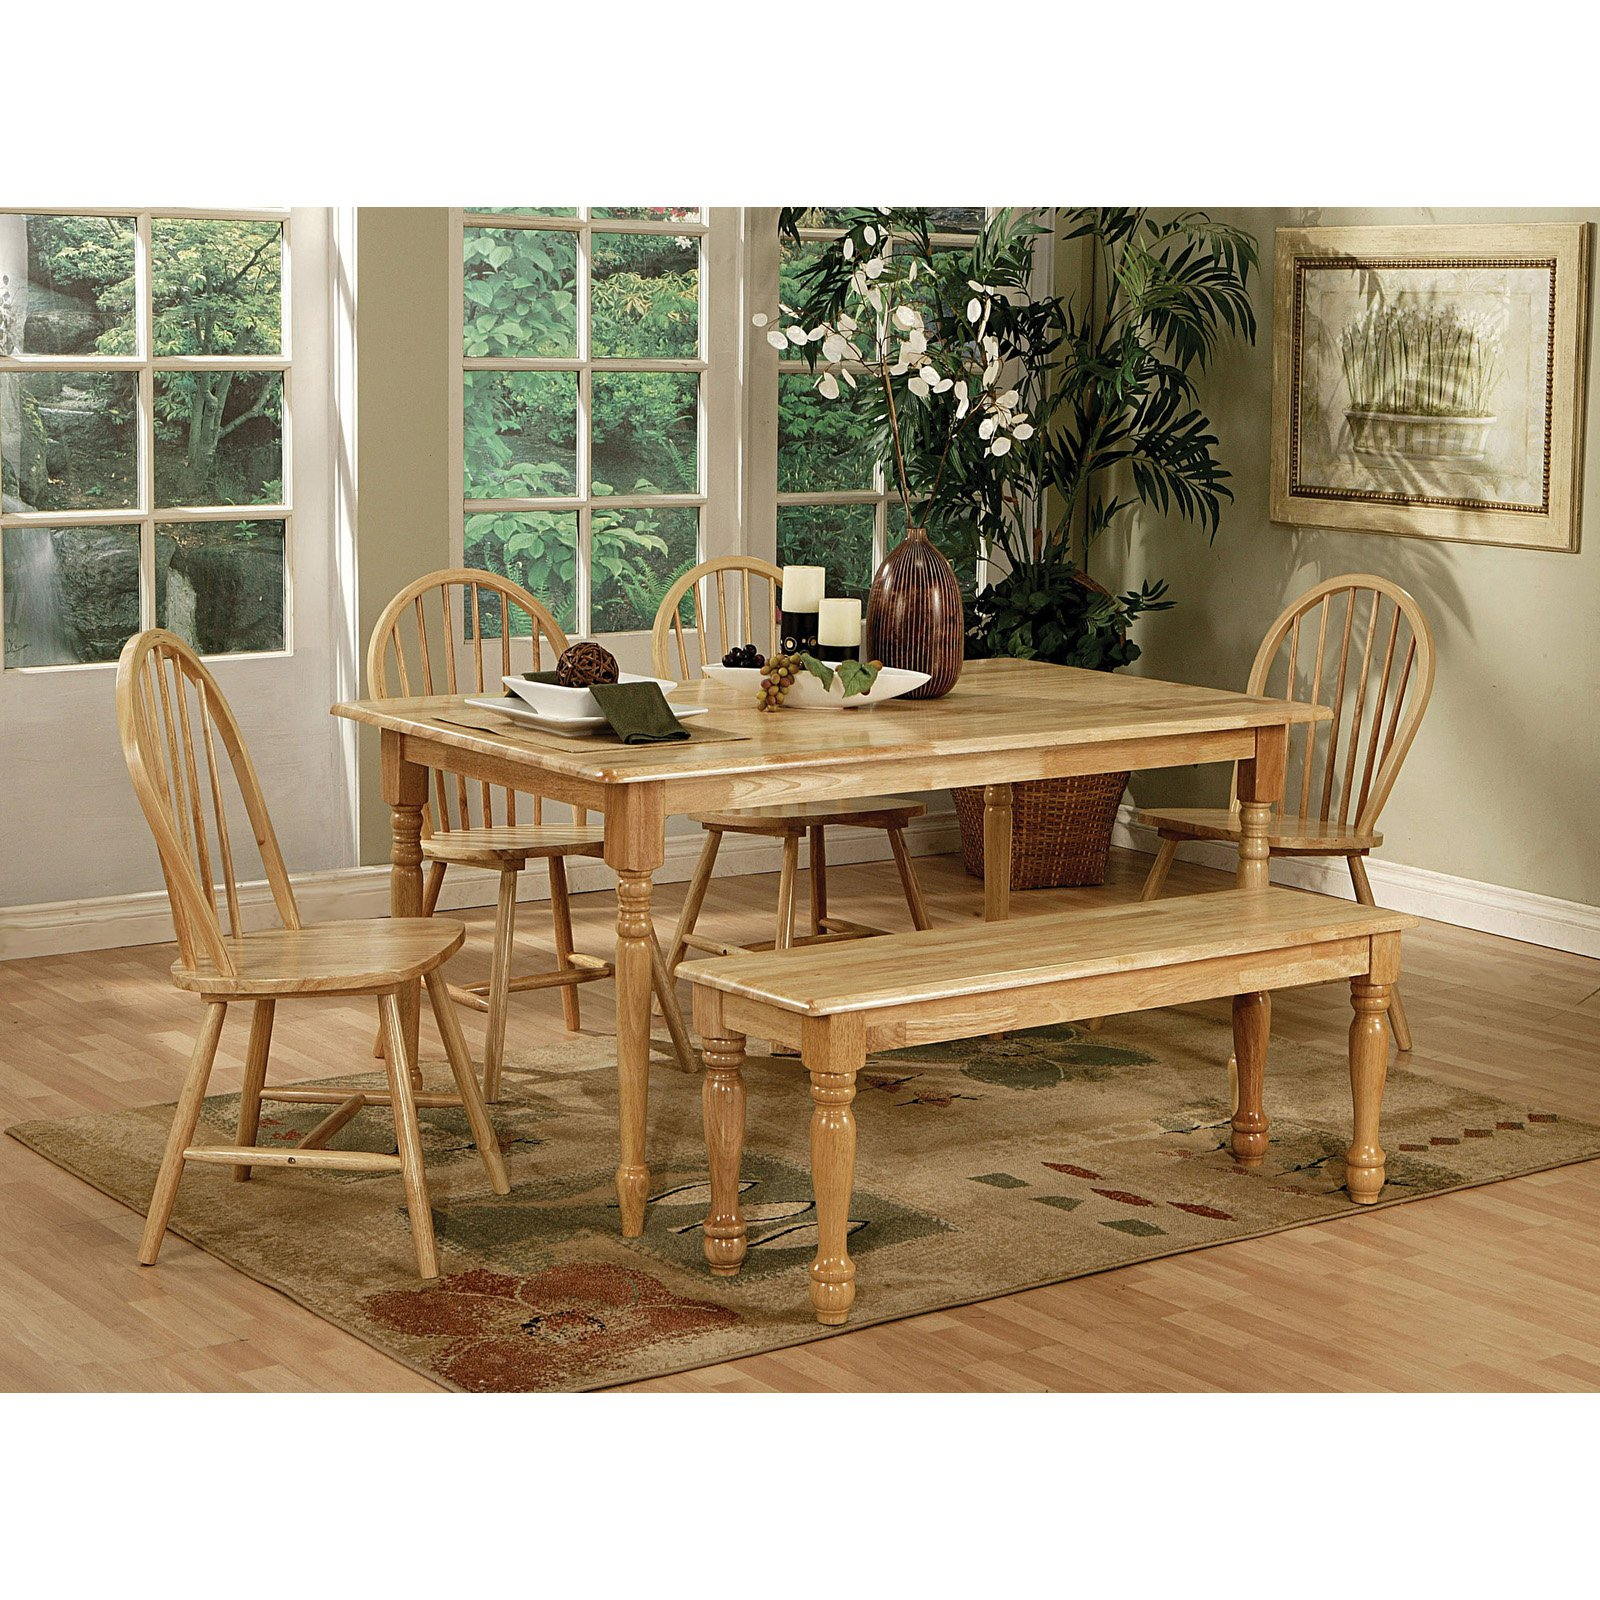 Coaster Furniture Benson Dining Side Chair - Set of 4